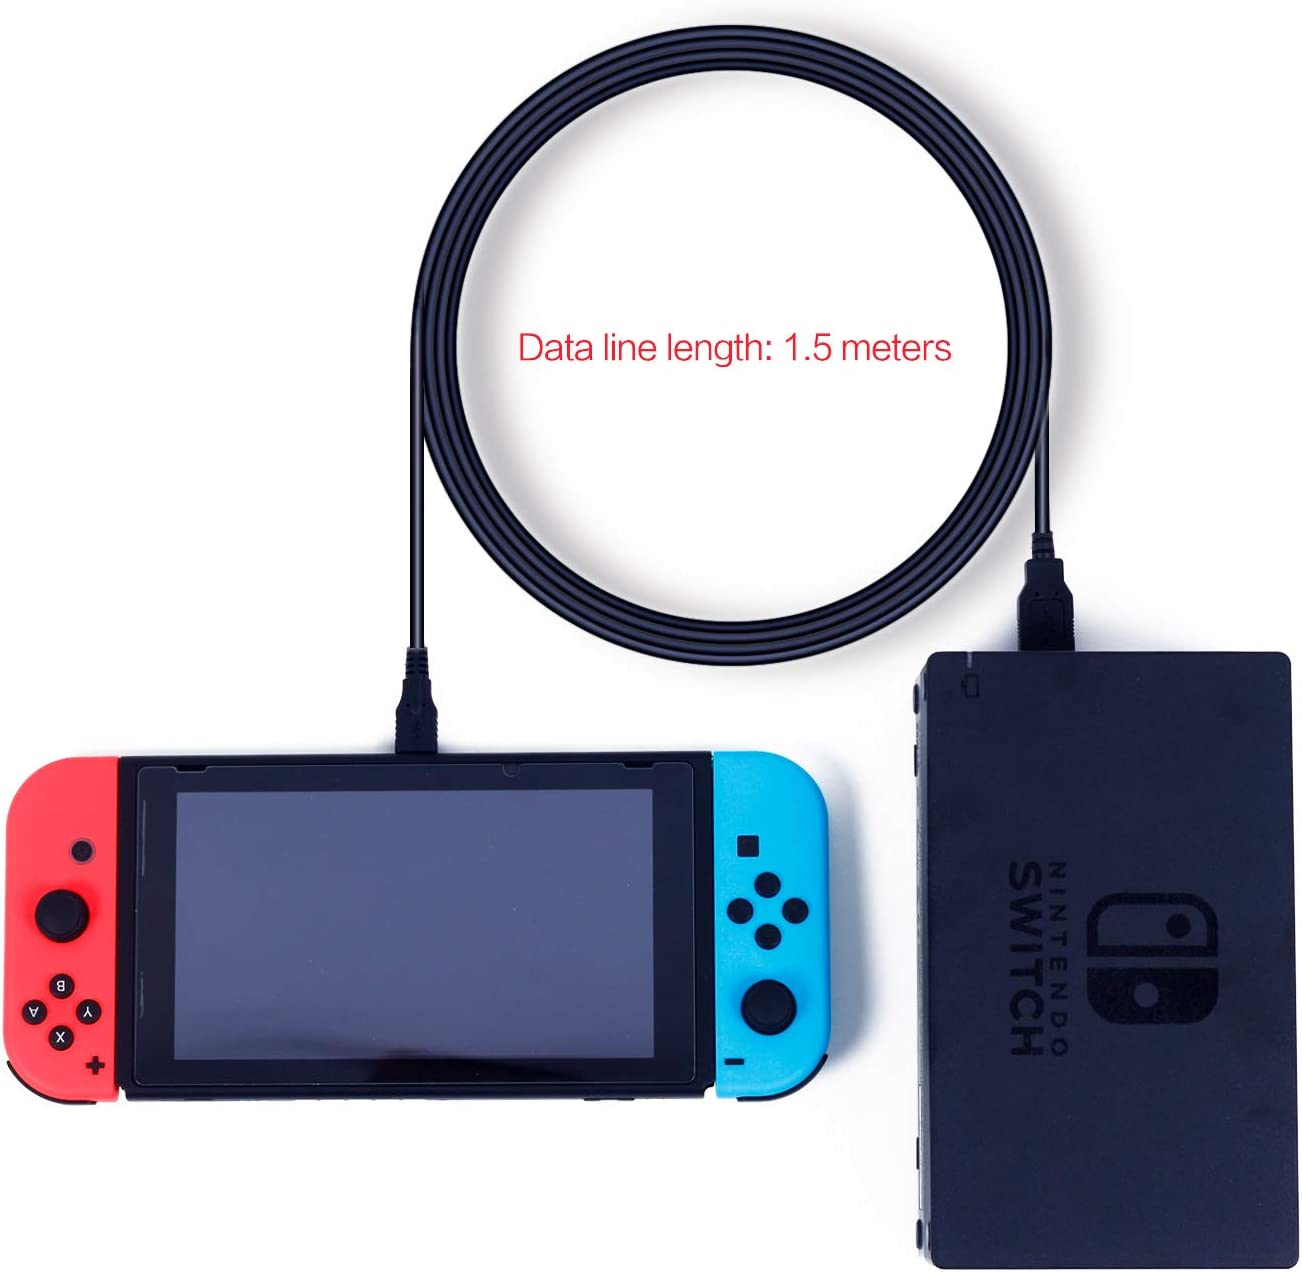 USB C Charger for Nintendo Switch, Fast Charging Cable for Nintendo Switch, MacBook, Pixel C, LG Nexus 5X G5, Nexus 6P/P9 Plus, One Plus 2, Sony XZ ...